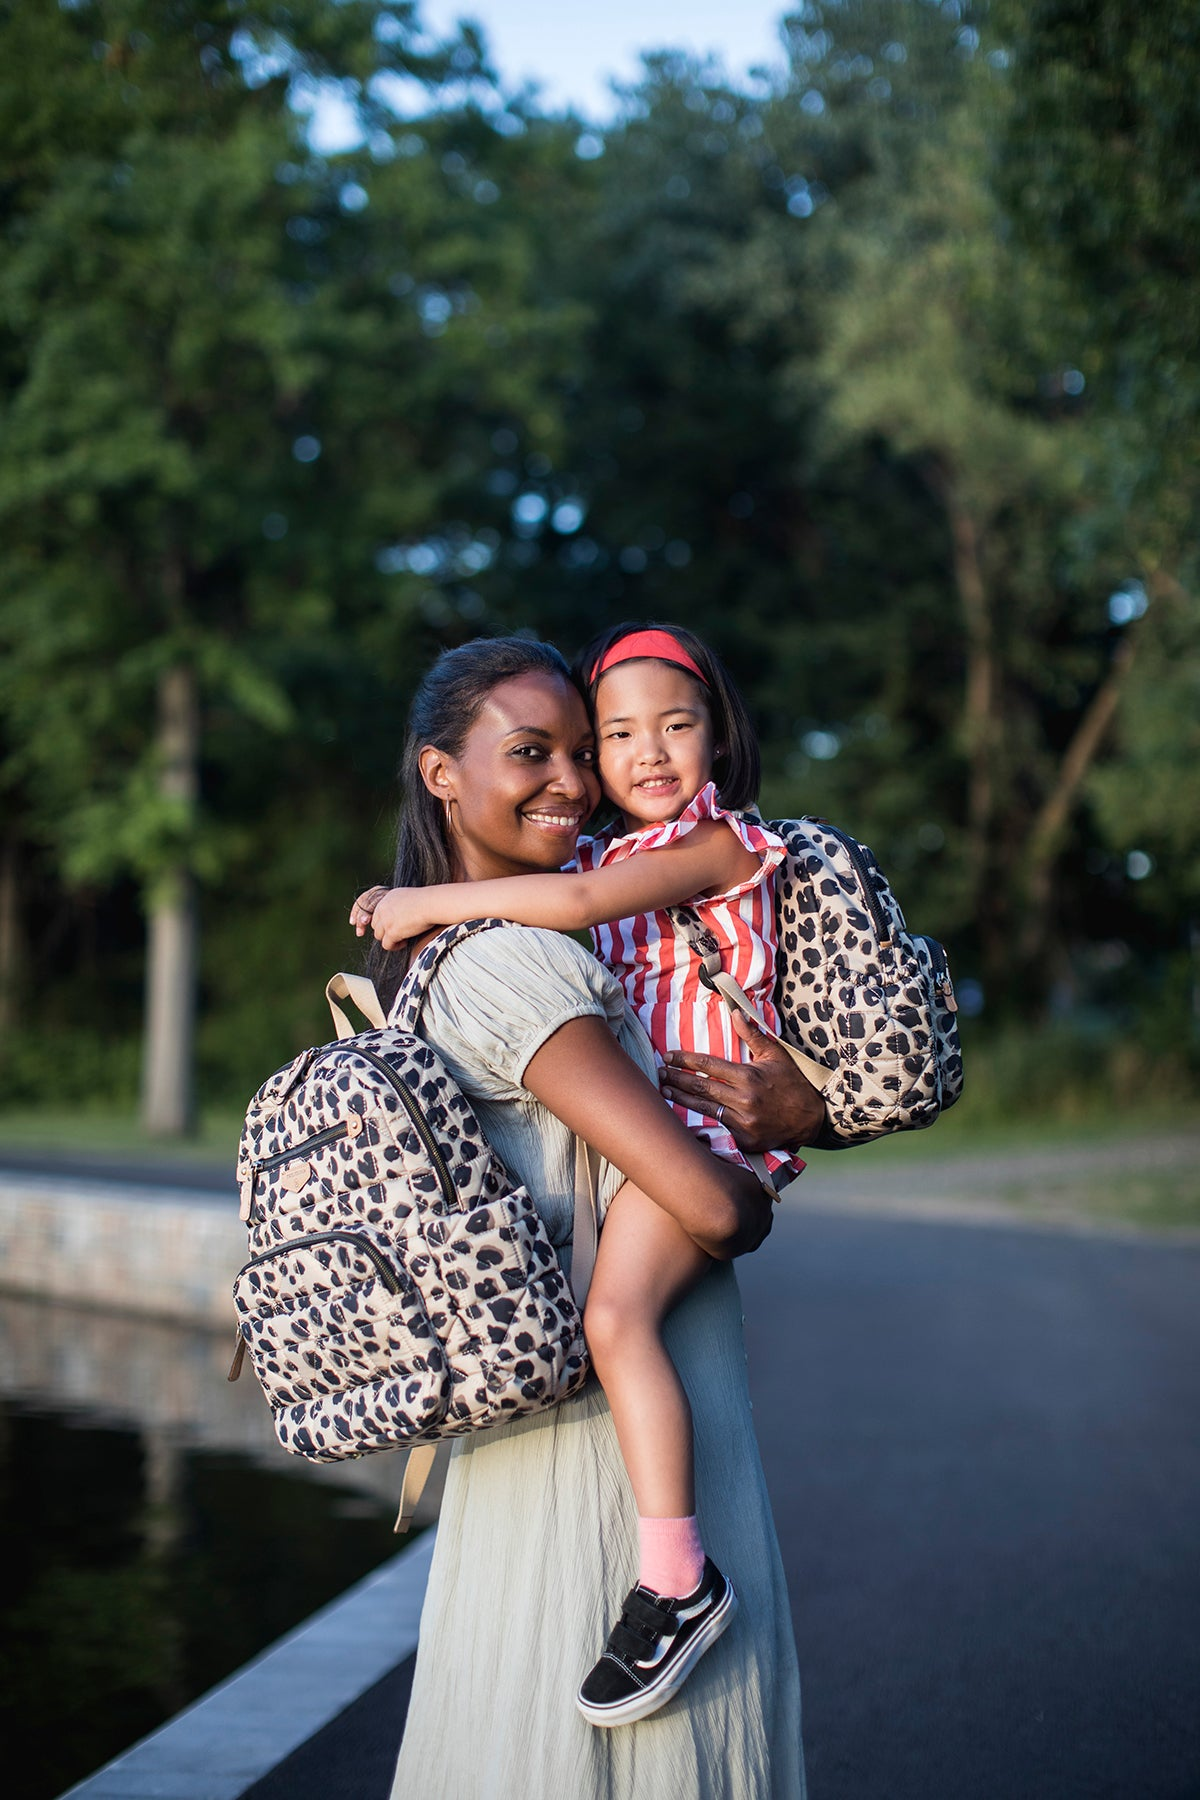 Woman wearing leopard companion backpack holding little girl that is also wearing a leopard backpack